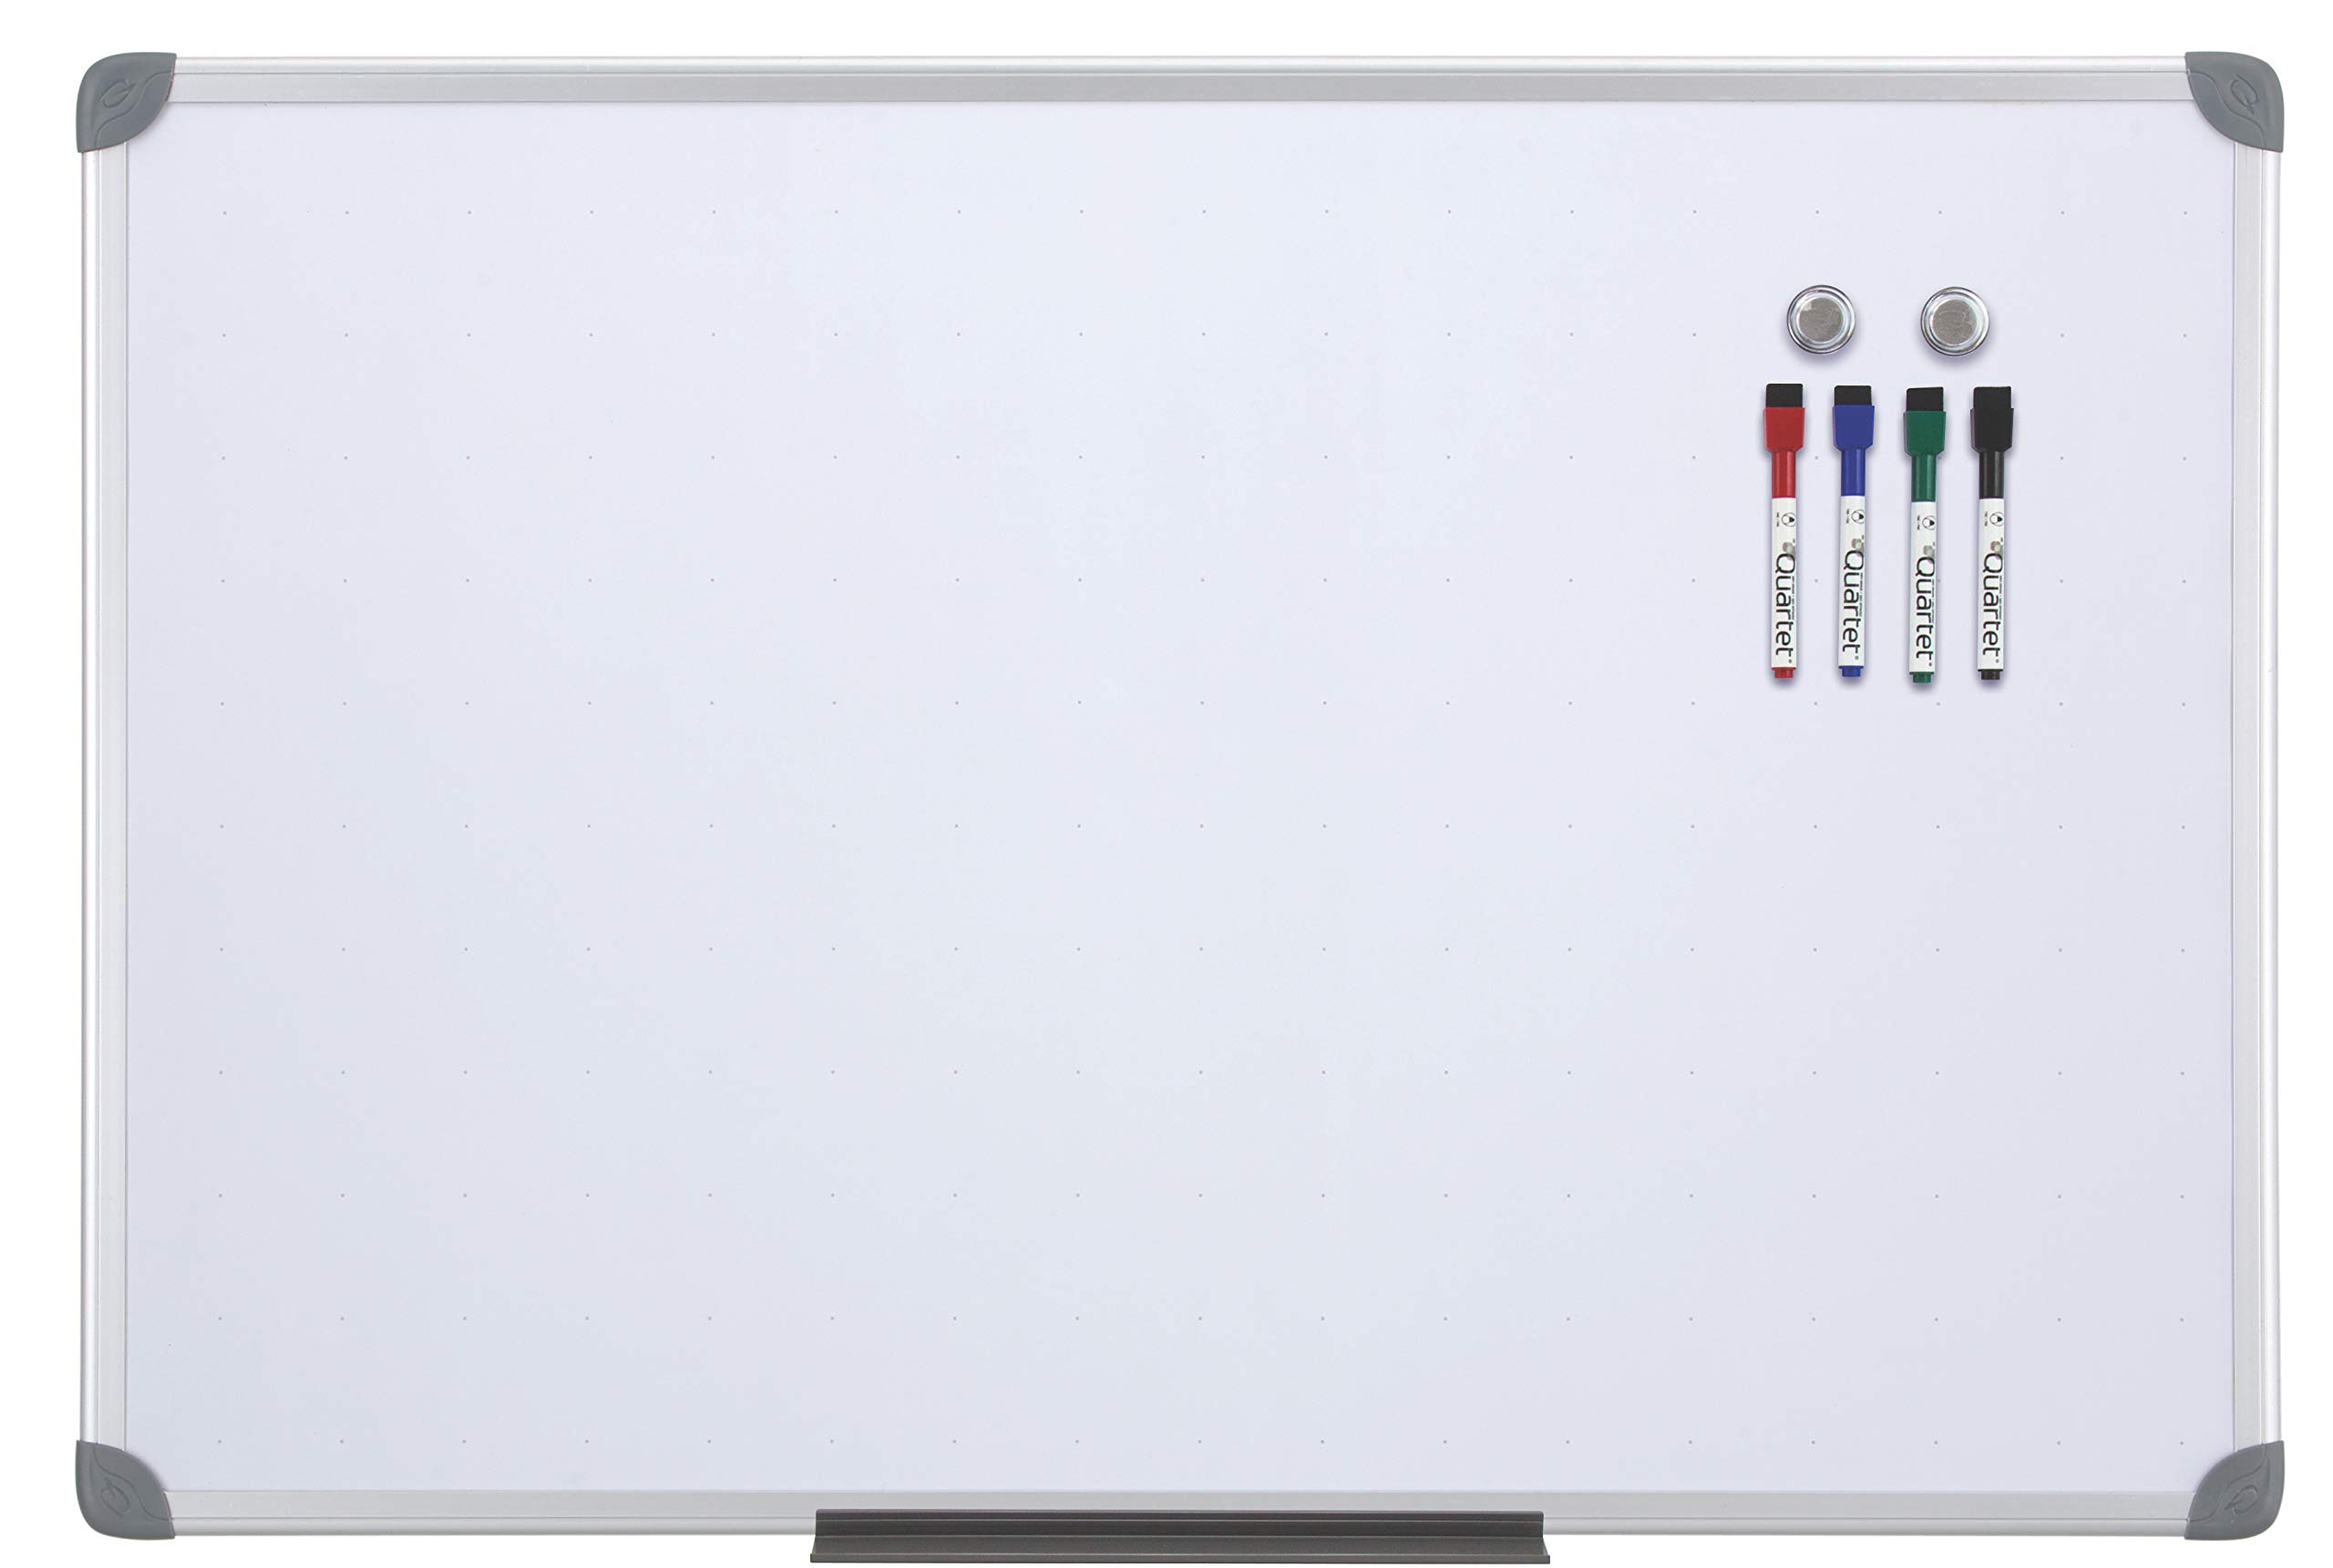 Quartet Magnetic Whiteboard, 2' x 3' White Boards, Dry Erase Board Includes 4 Dry Erase Markers & Marker Tray, Home Office Accessories, Euro Style Aluminum Frame (UKTE2436-ECR)